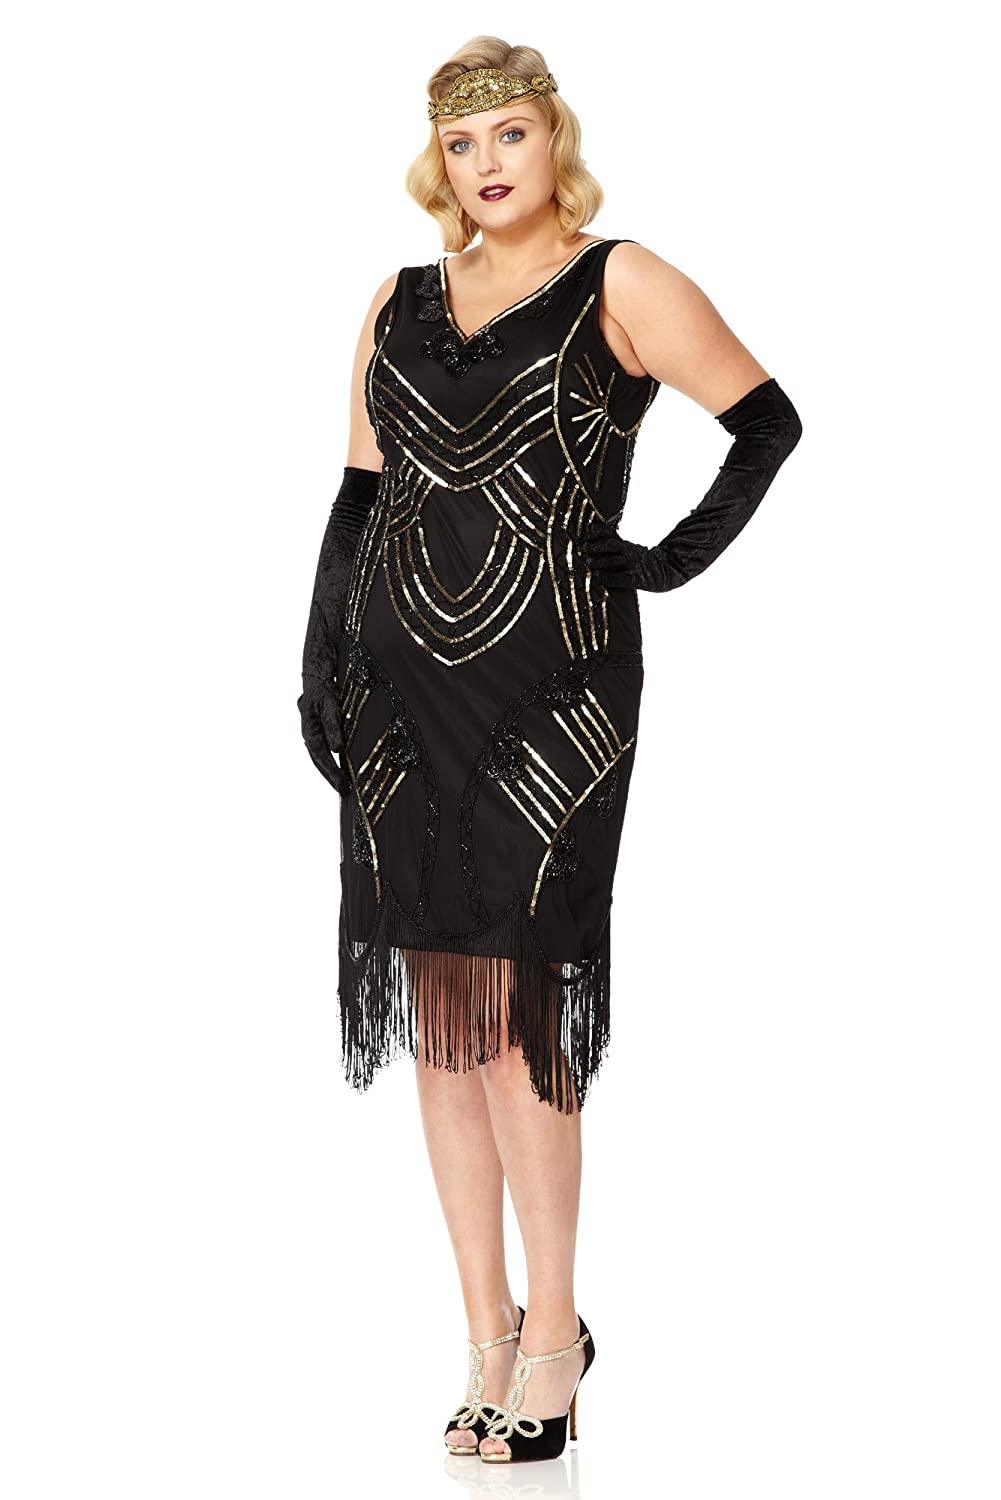 1920s Plus Size Flapper Dresses, Gatsby Dresses, Flapper Costumes Juliet Vintage Inspired Fringe Dress in Black Gold $124.86 AT vintagedancer.com